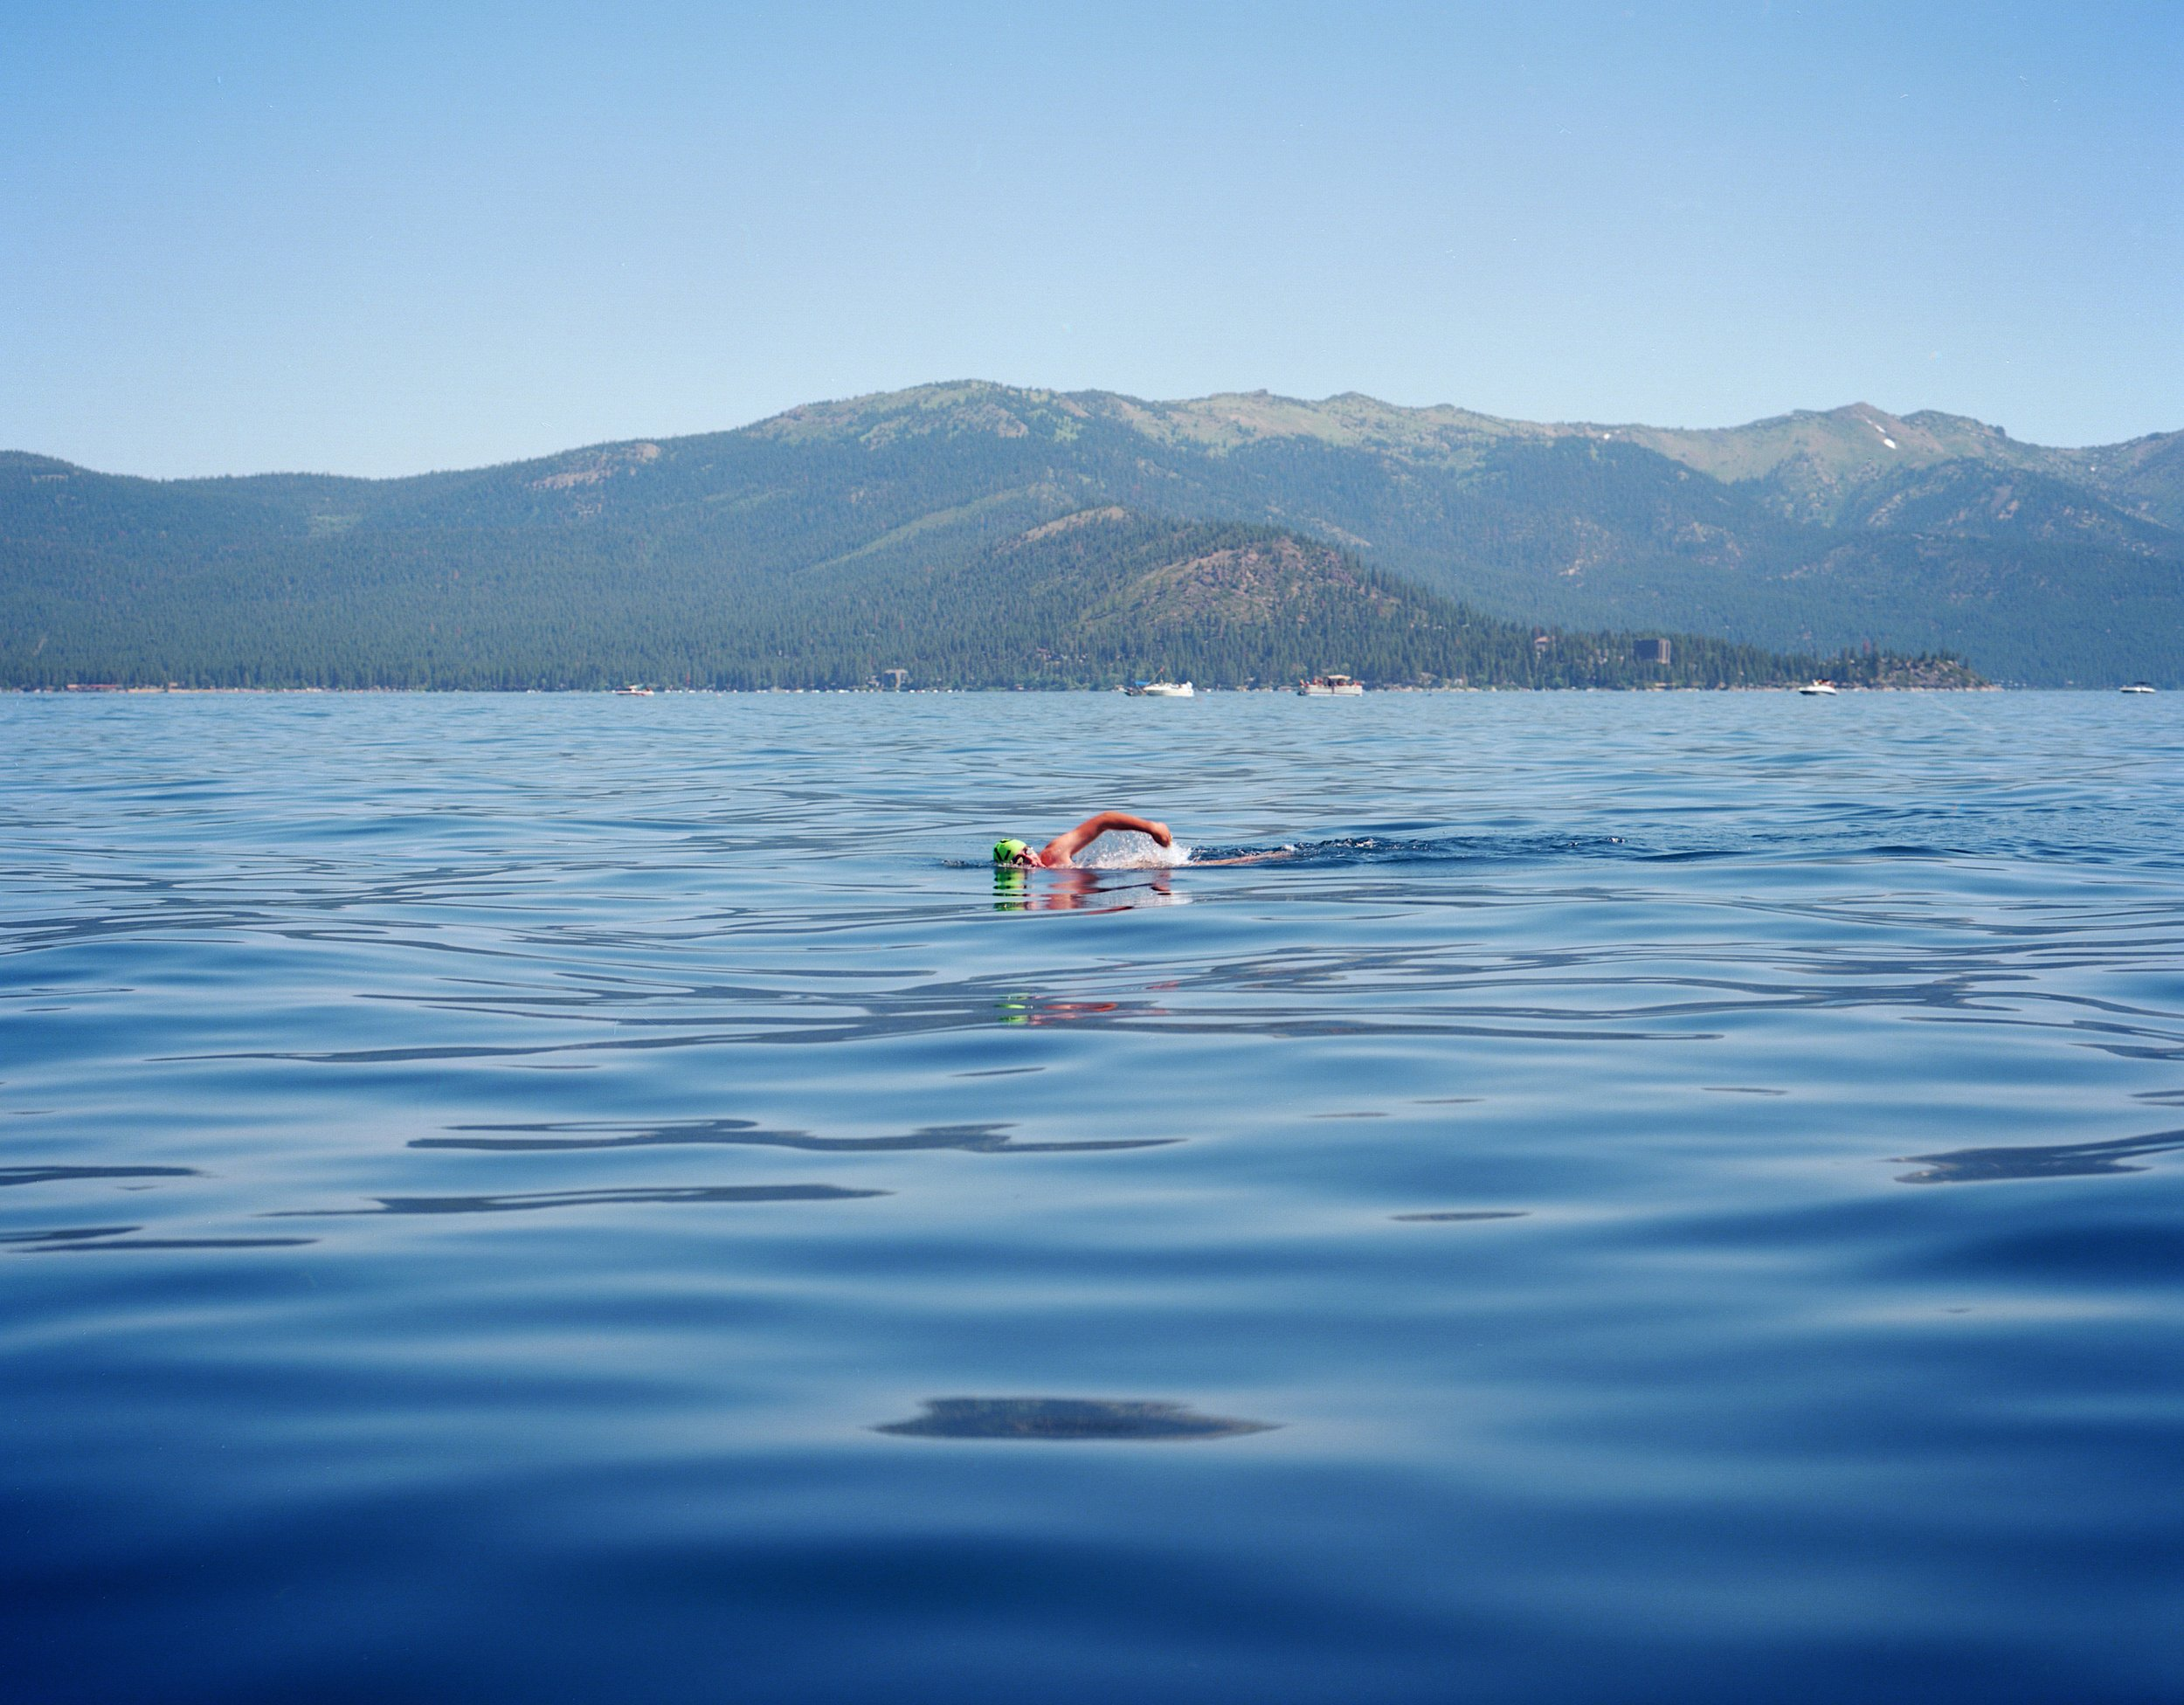 Me swimming across Lake Tahoe, 2017. Pentax 6x7 + 105mm f/2.4. I particiapted in the Trans Tahoe Relay last summer and trained a fellow relay mate on how to use the big camera between relay legs. He was able to snap this pick of me from the leader boat. While the frame is dominated by blue colors notice how the green cap and warm skin pop.